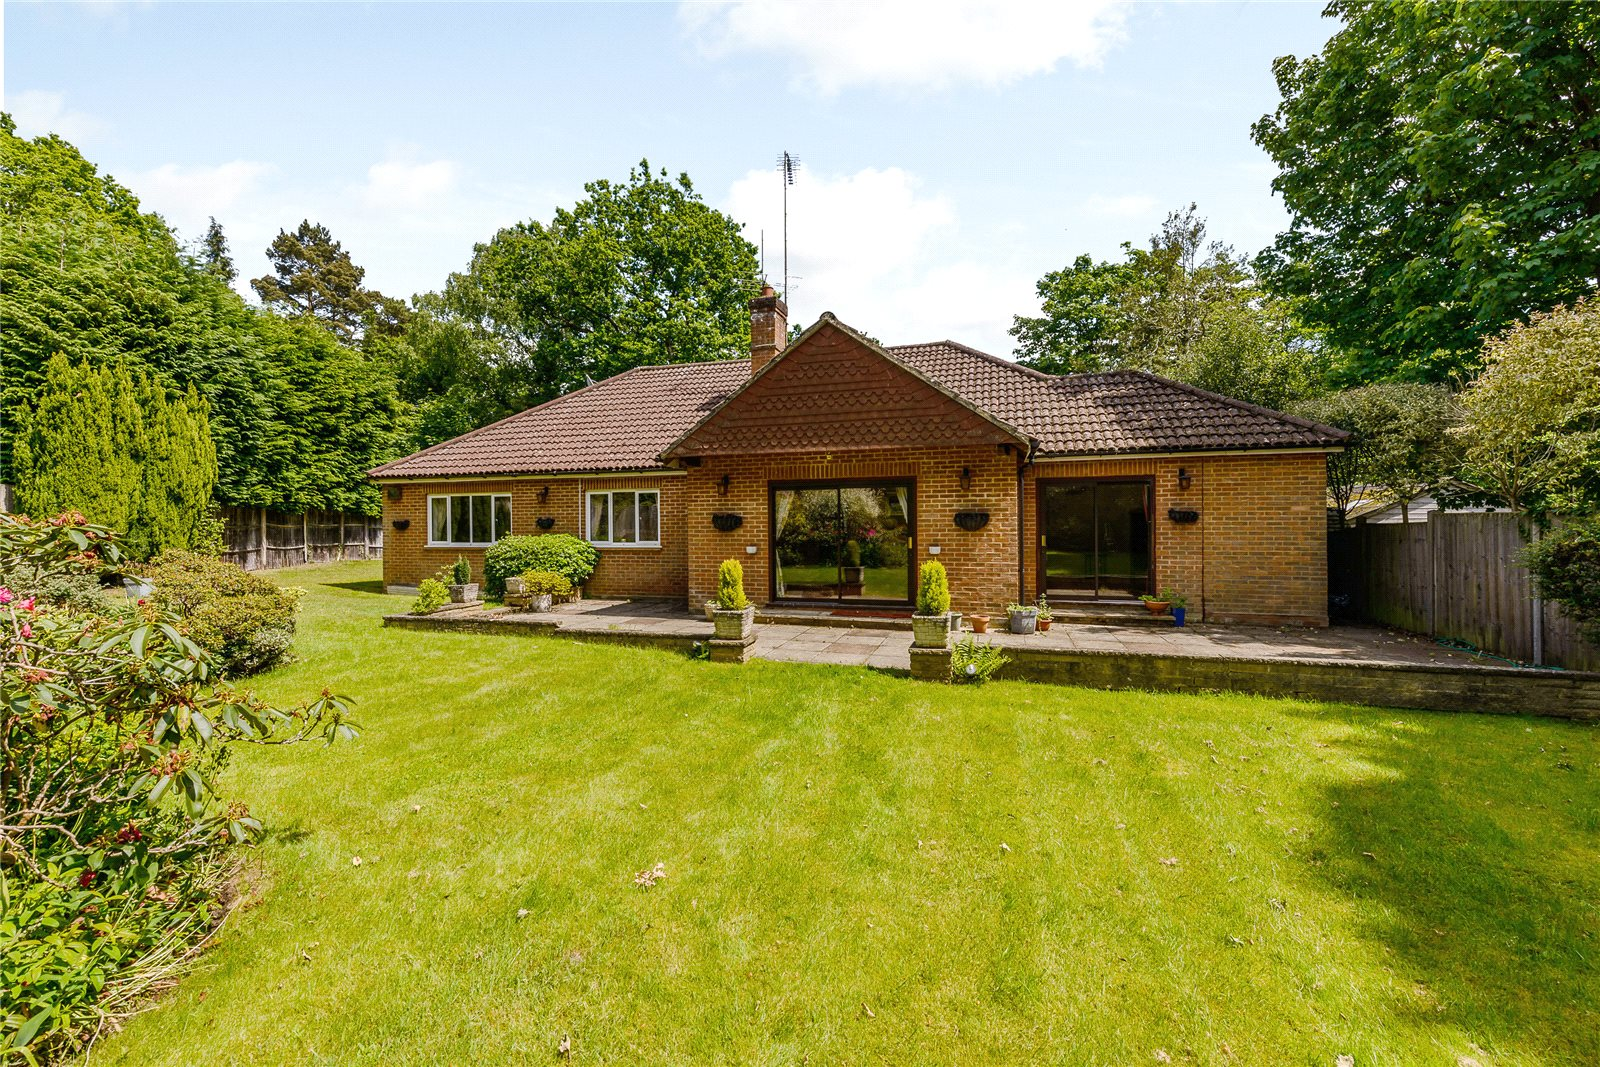 Single Family Home for Sale at Snows Ride, Windlesham, Surrey, GU20 Windlesham, England